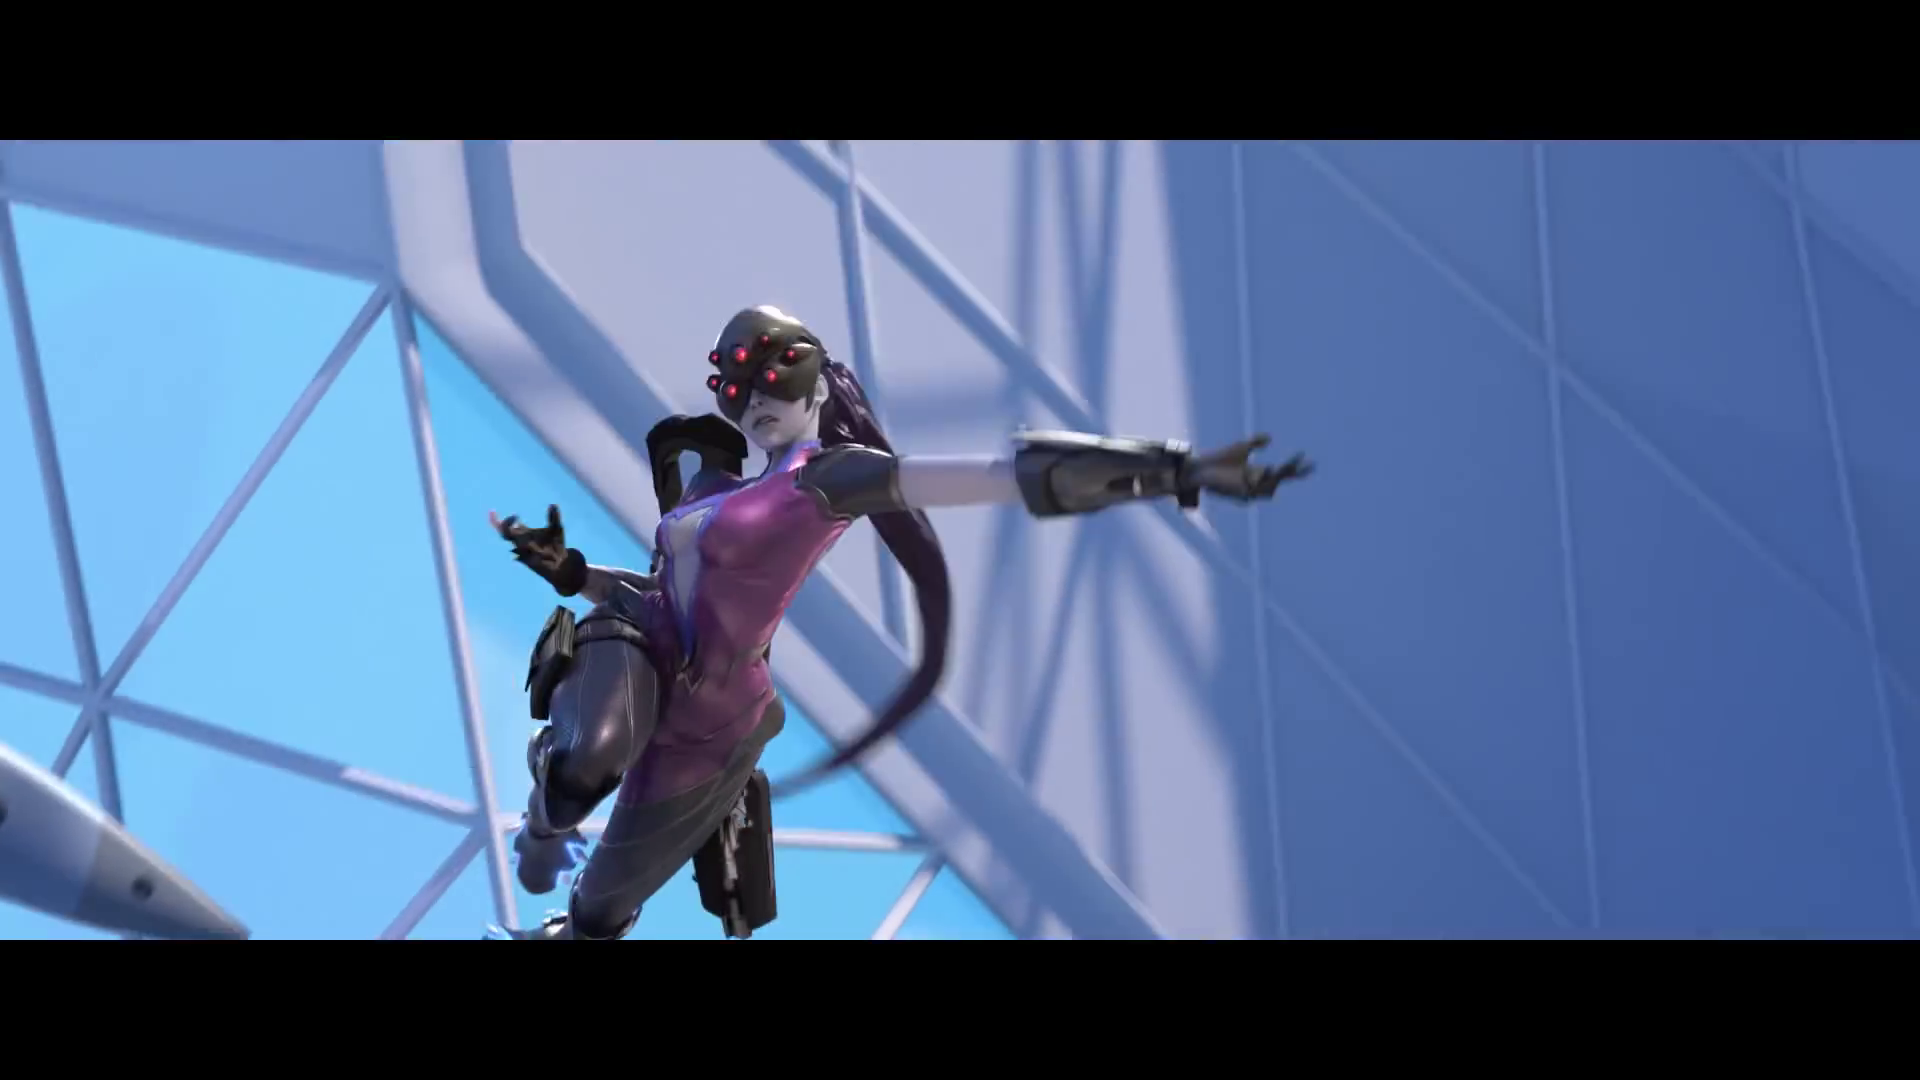 widowmaker overwatch wallpaper 1920x1080 - photo #11